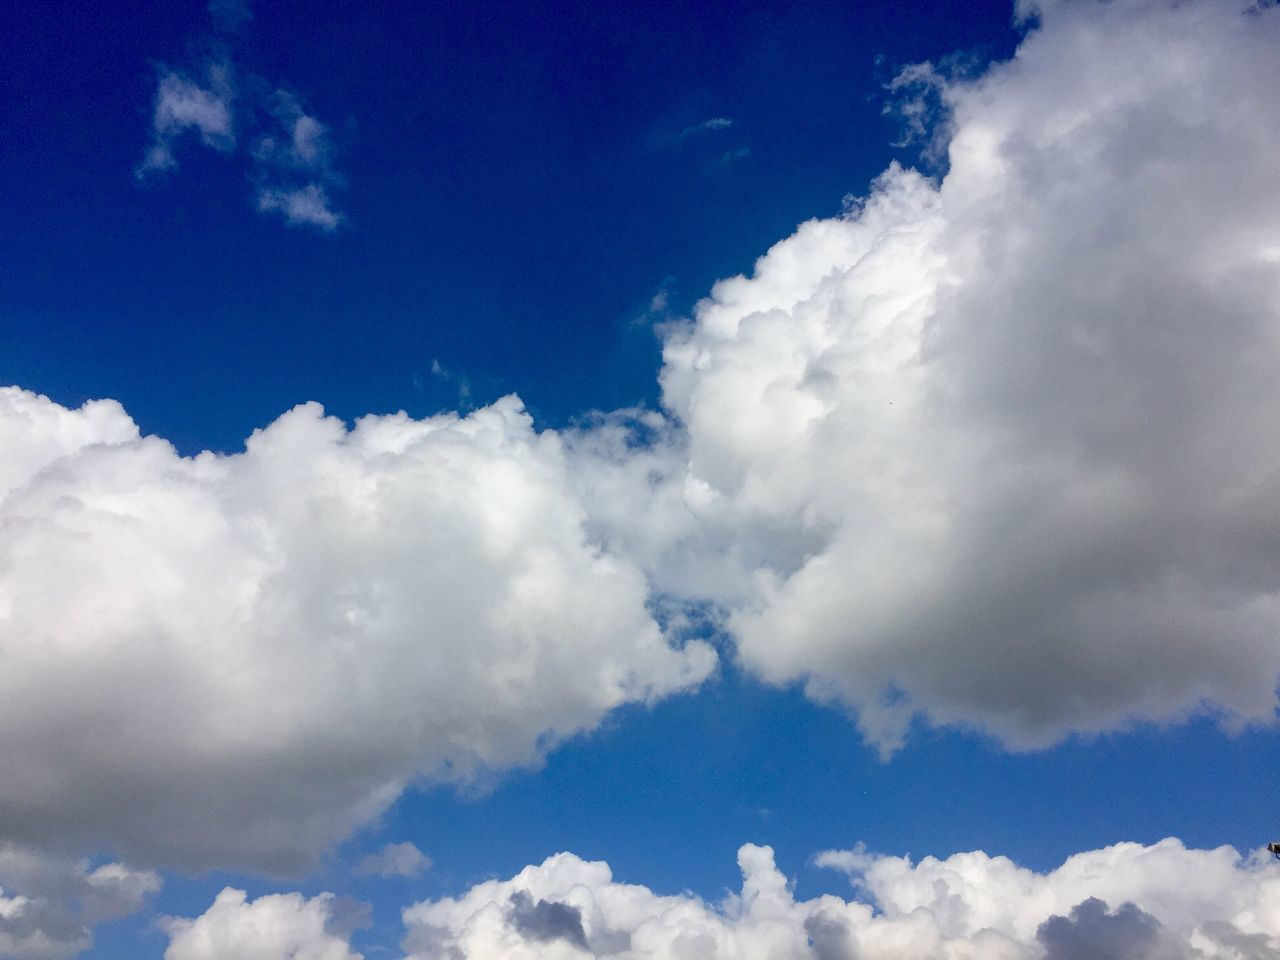 Clouds No People Indoors  Backgrounds Sky Cloud - Sky Cloudscape Blue Nature Fluffy Tranquility Cumulus Cloud Low Angle View Scenics Beauty In Nature Softness Day Cumulus Sky Only Heaven Outdoors